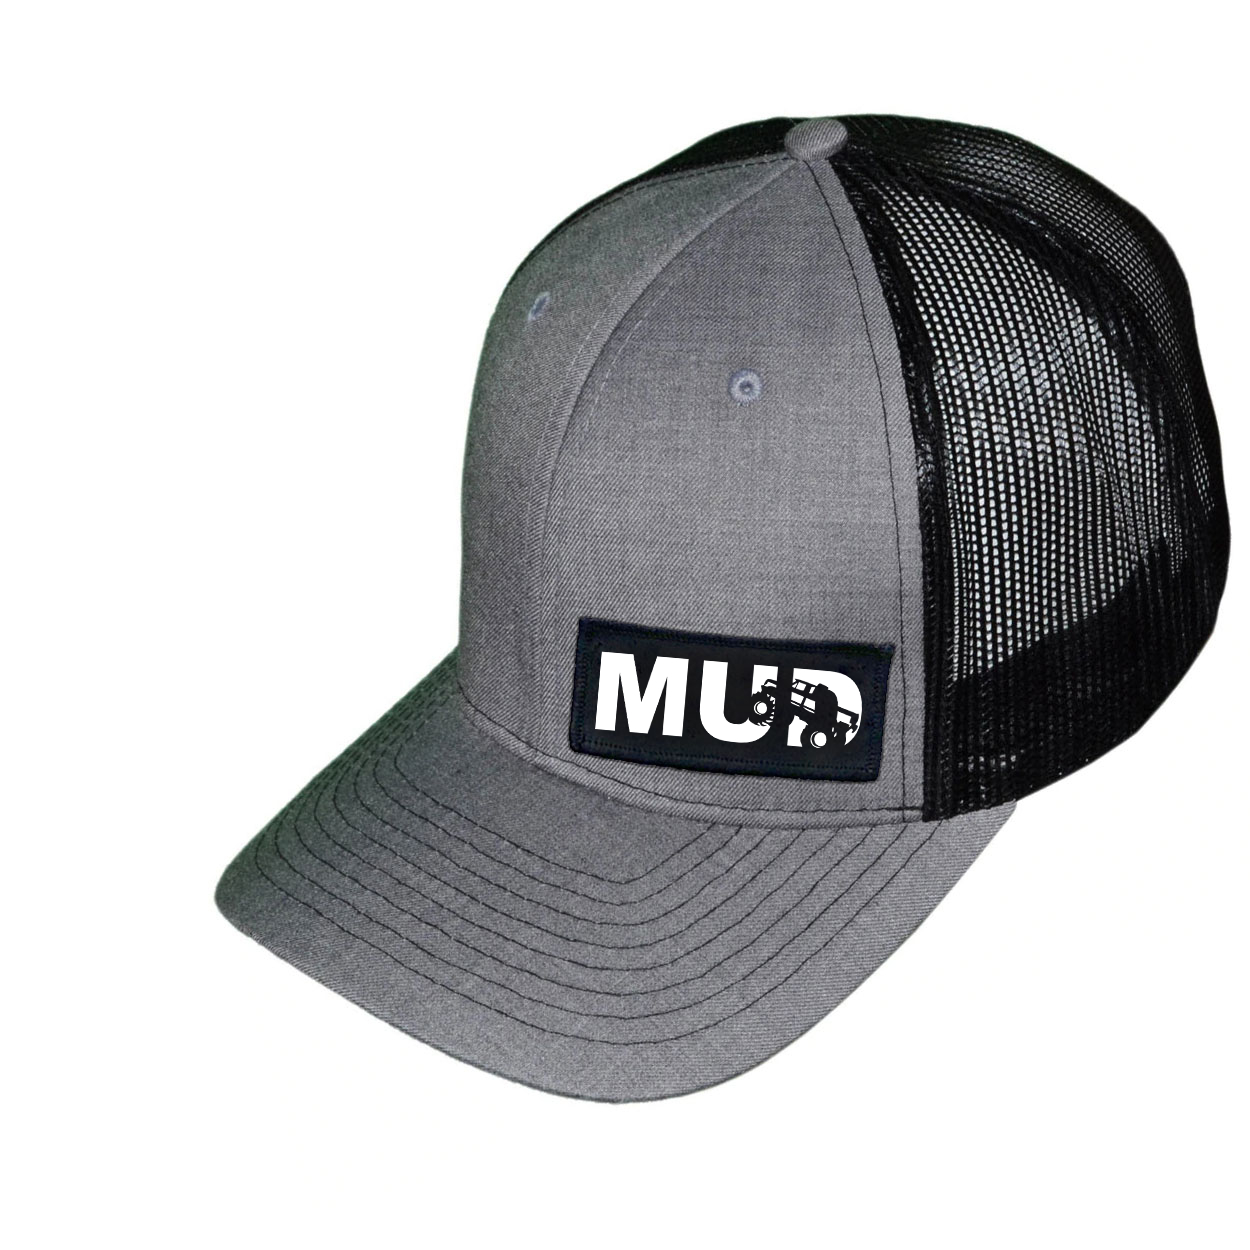 Mud Truck Logo Night Out Woven Patch Snapback Trucker Hat Heather Gray/Black (White Logo)